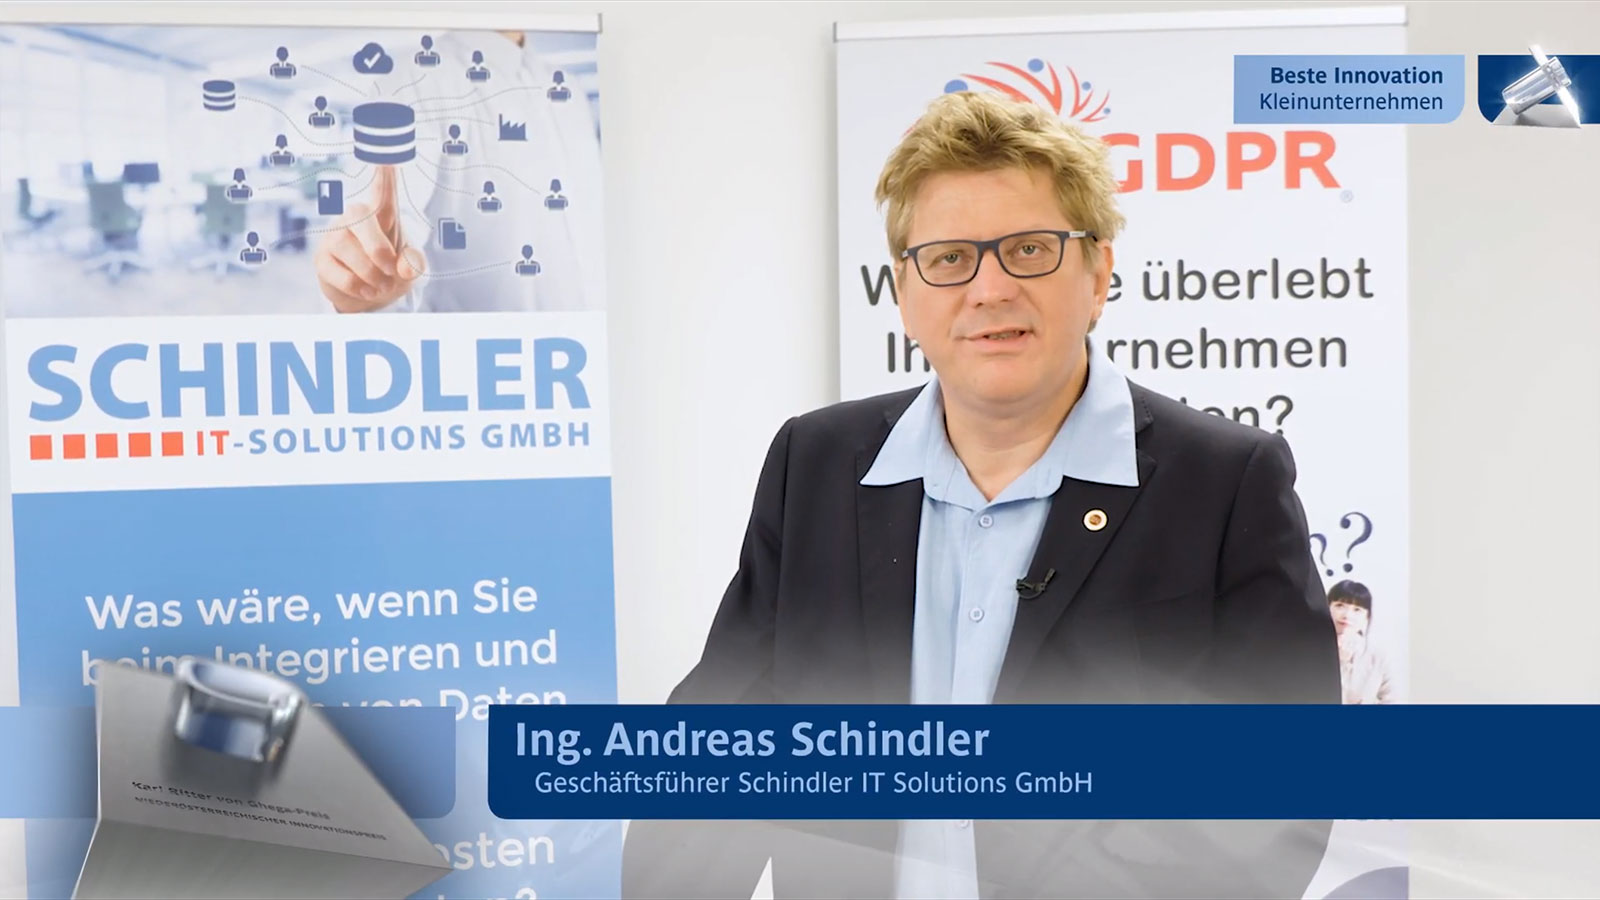 Schindler IT-Solutions GmbH